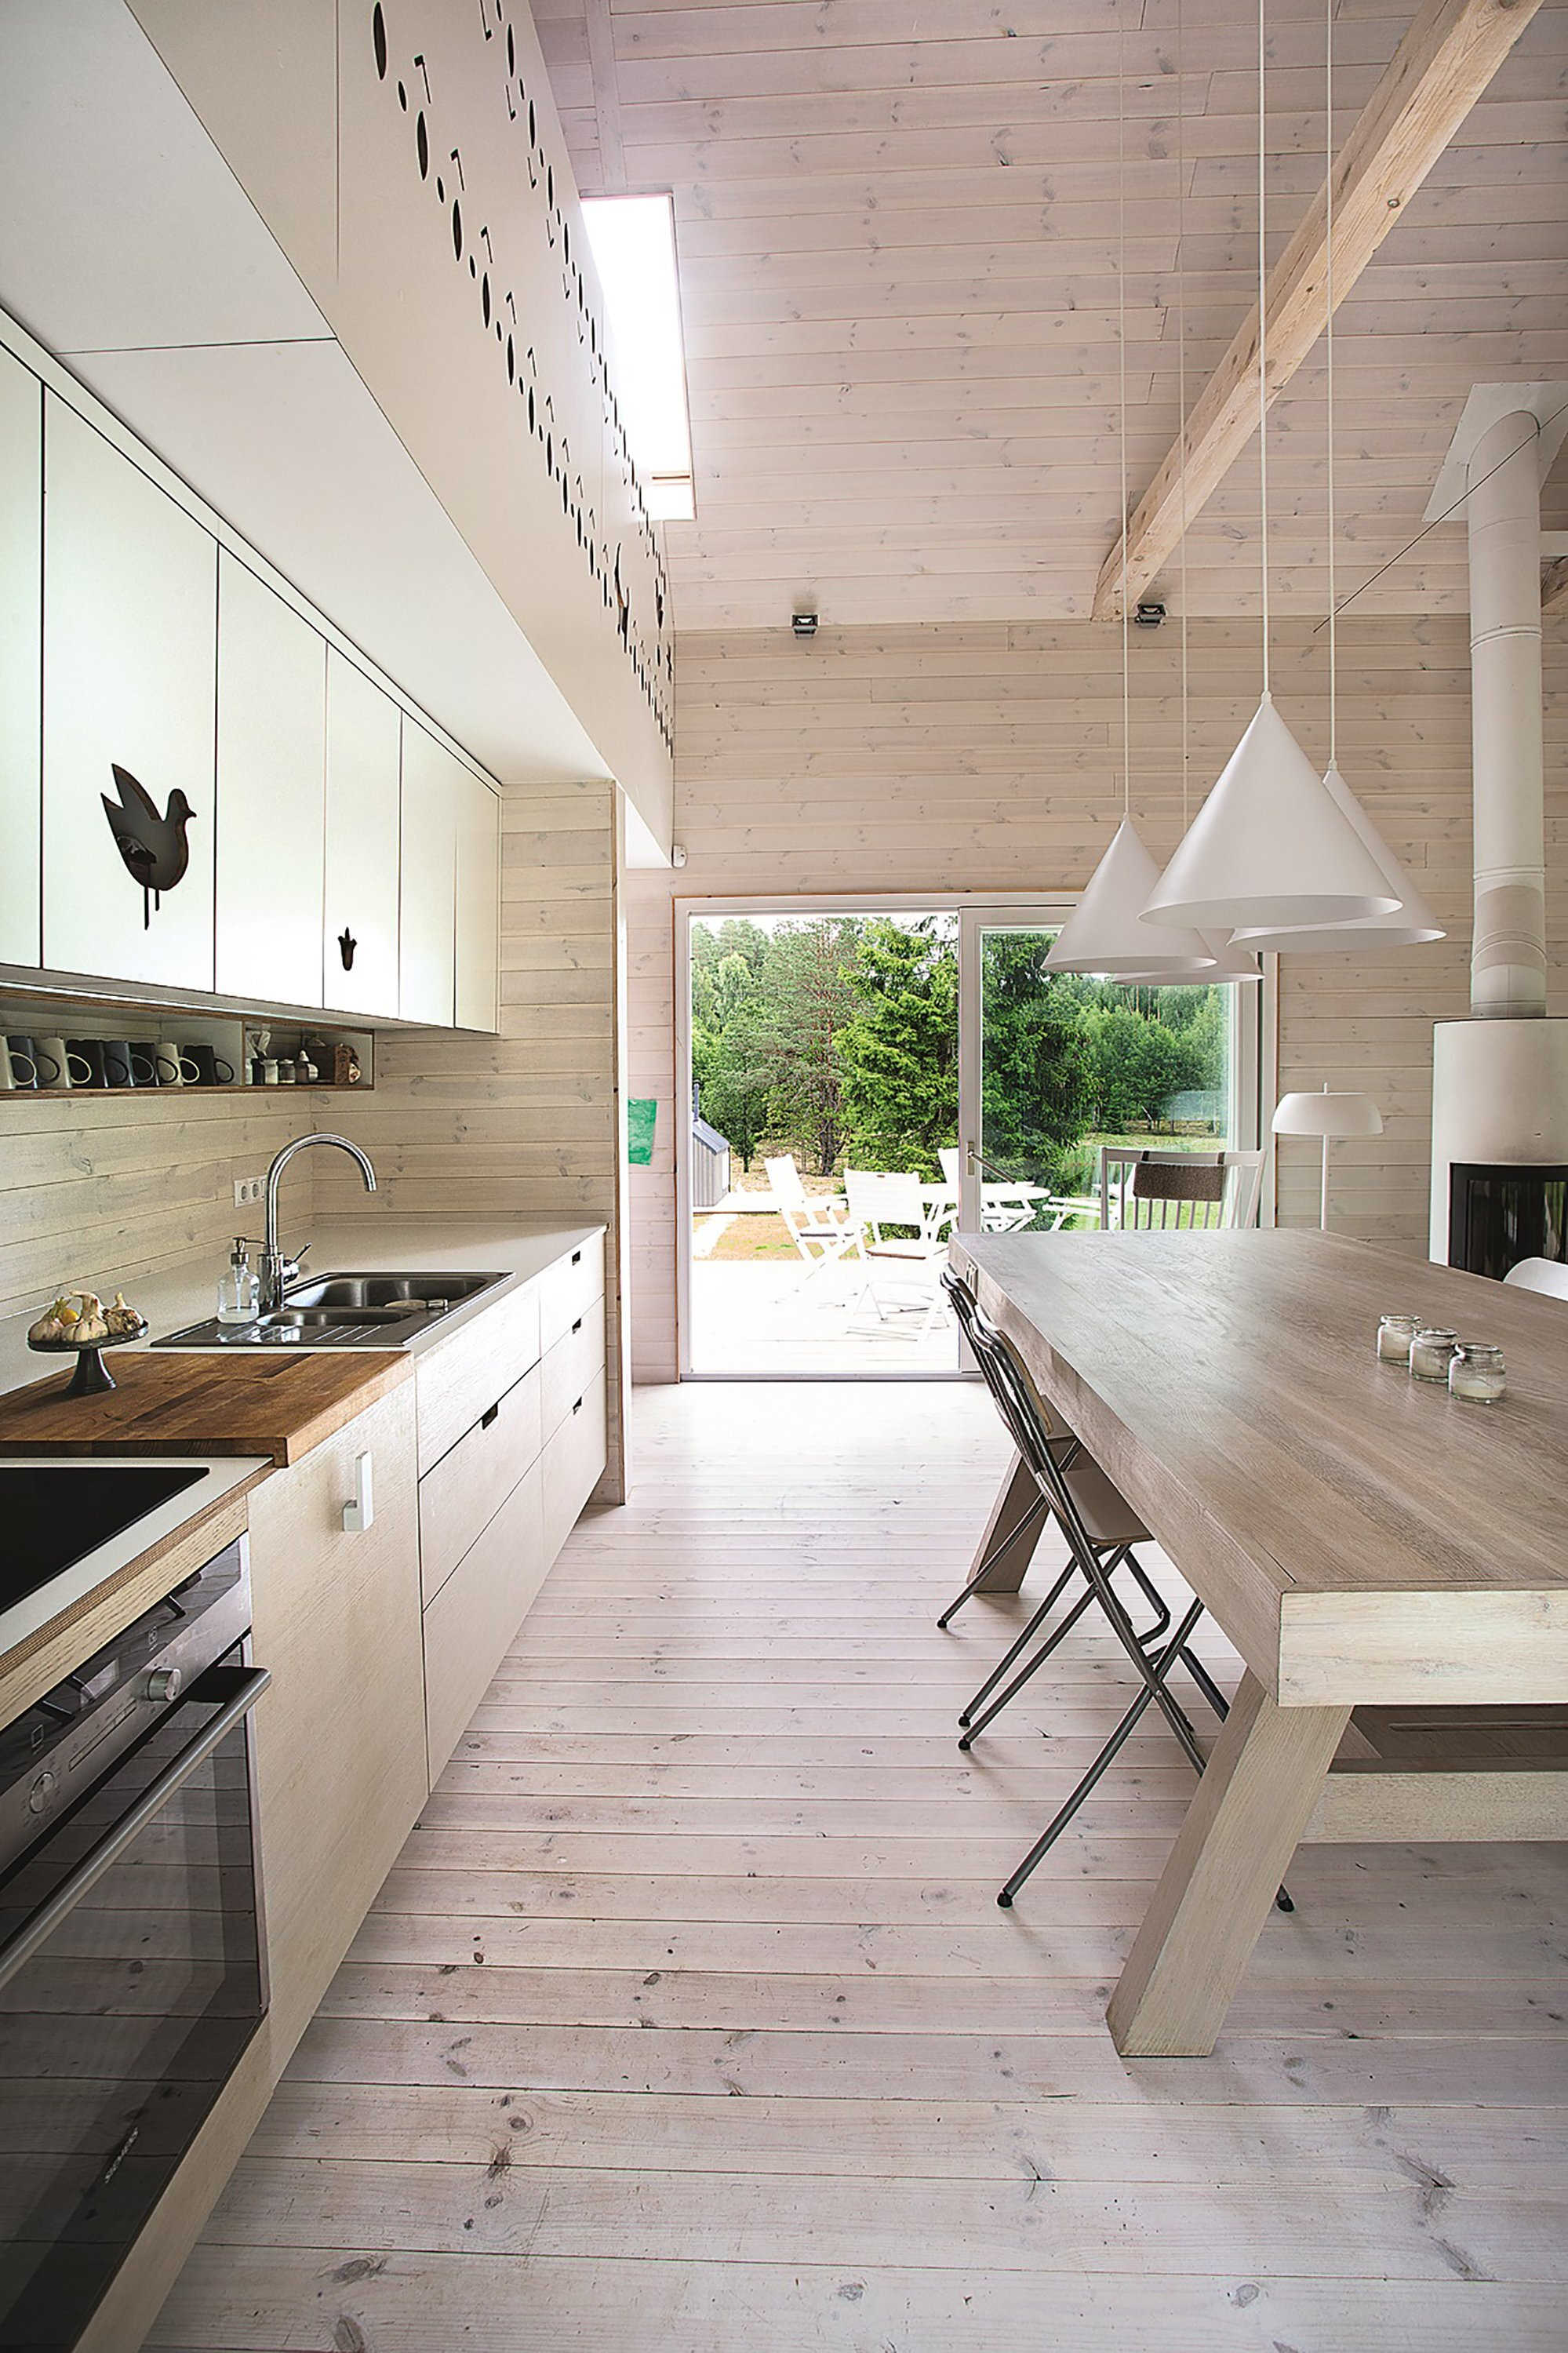 Lithuanian Hunting House - Devyni architektai - Lithuania - Kitchen - Humble Homes